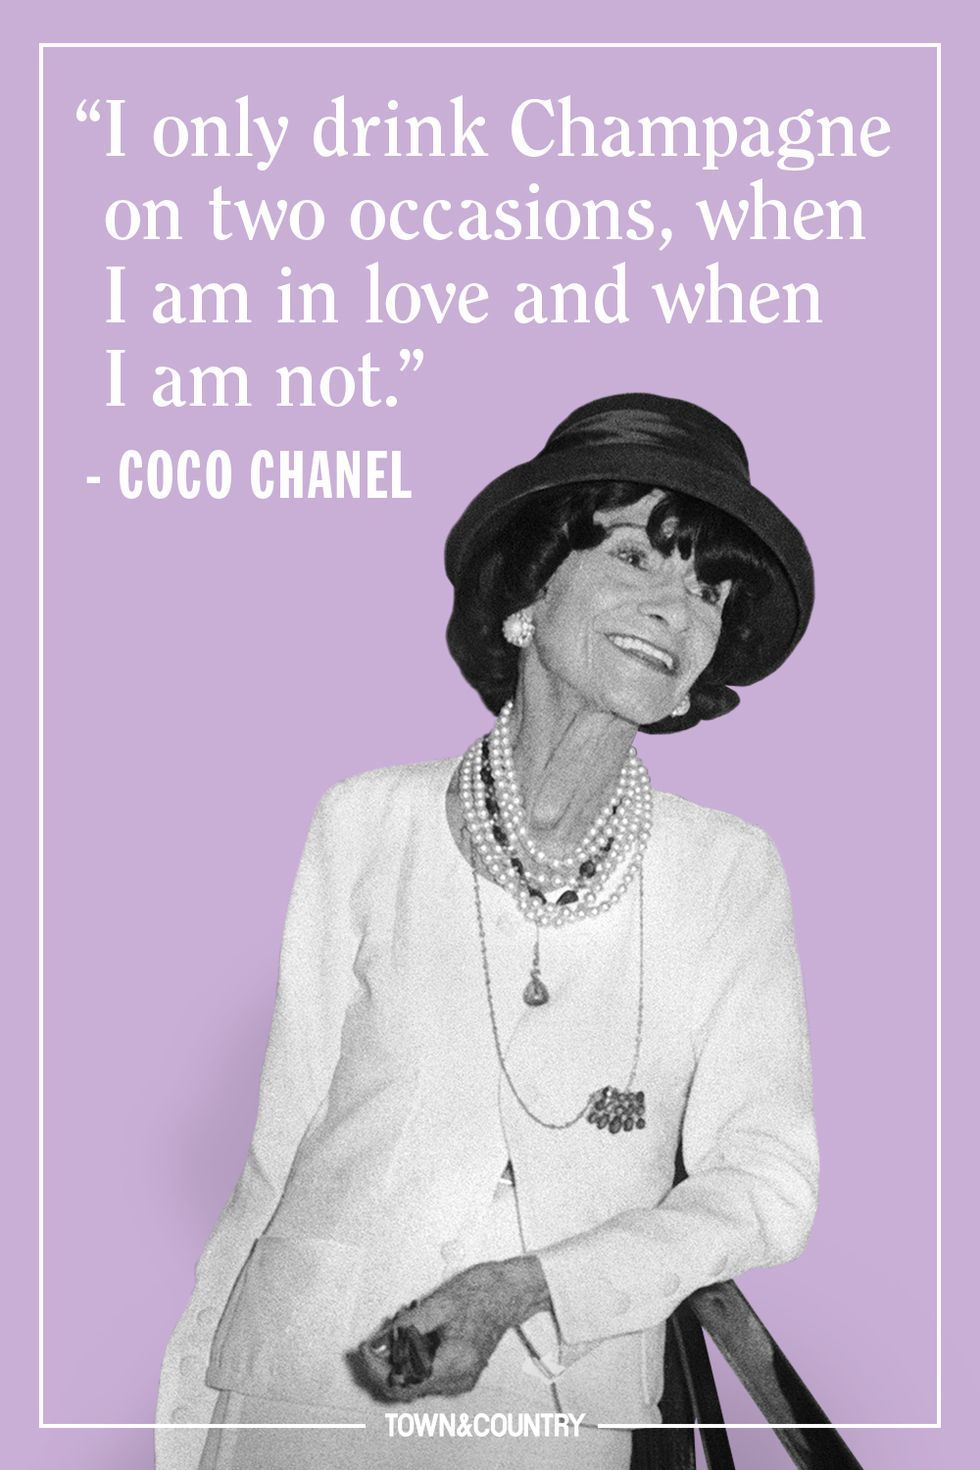 25 Coco Chanel Quotes Every Woman Should Live By in 2020